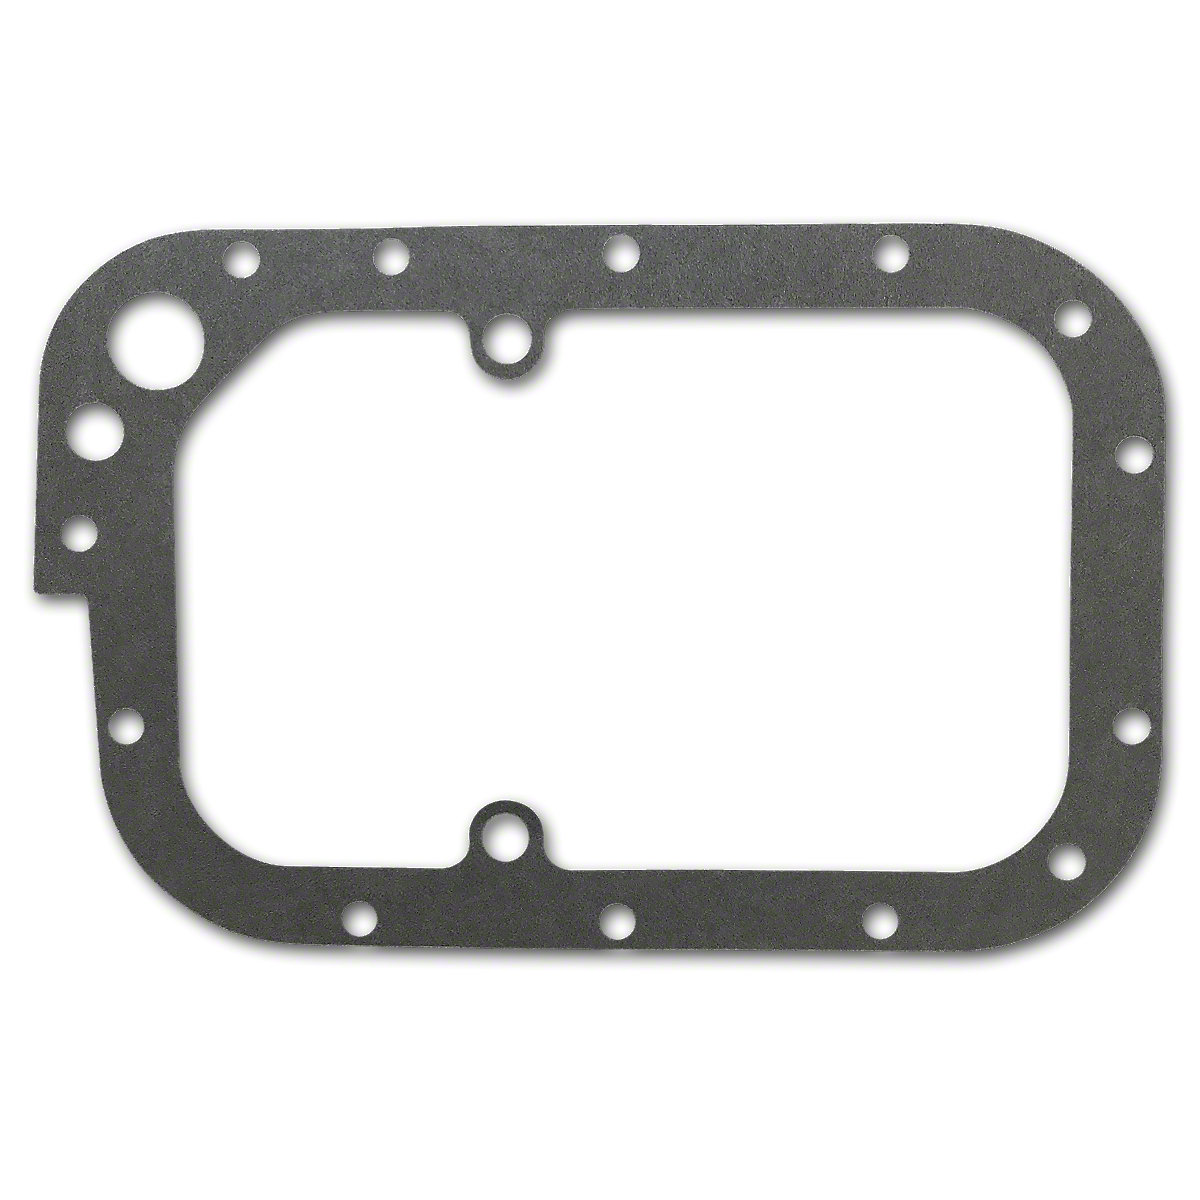 FDS3989 Rear Center Housing to Transmission Case Gasket